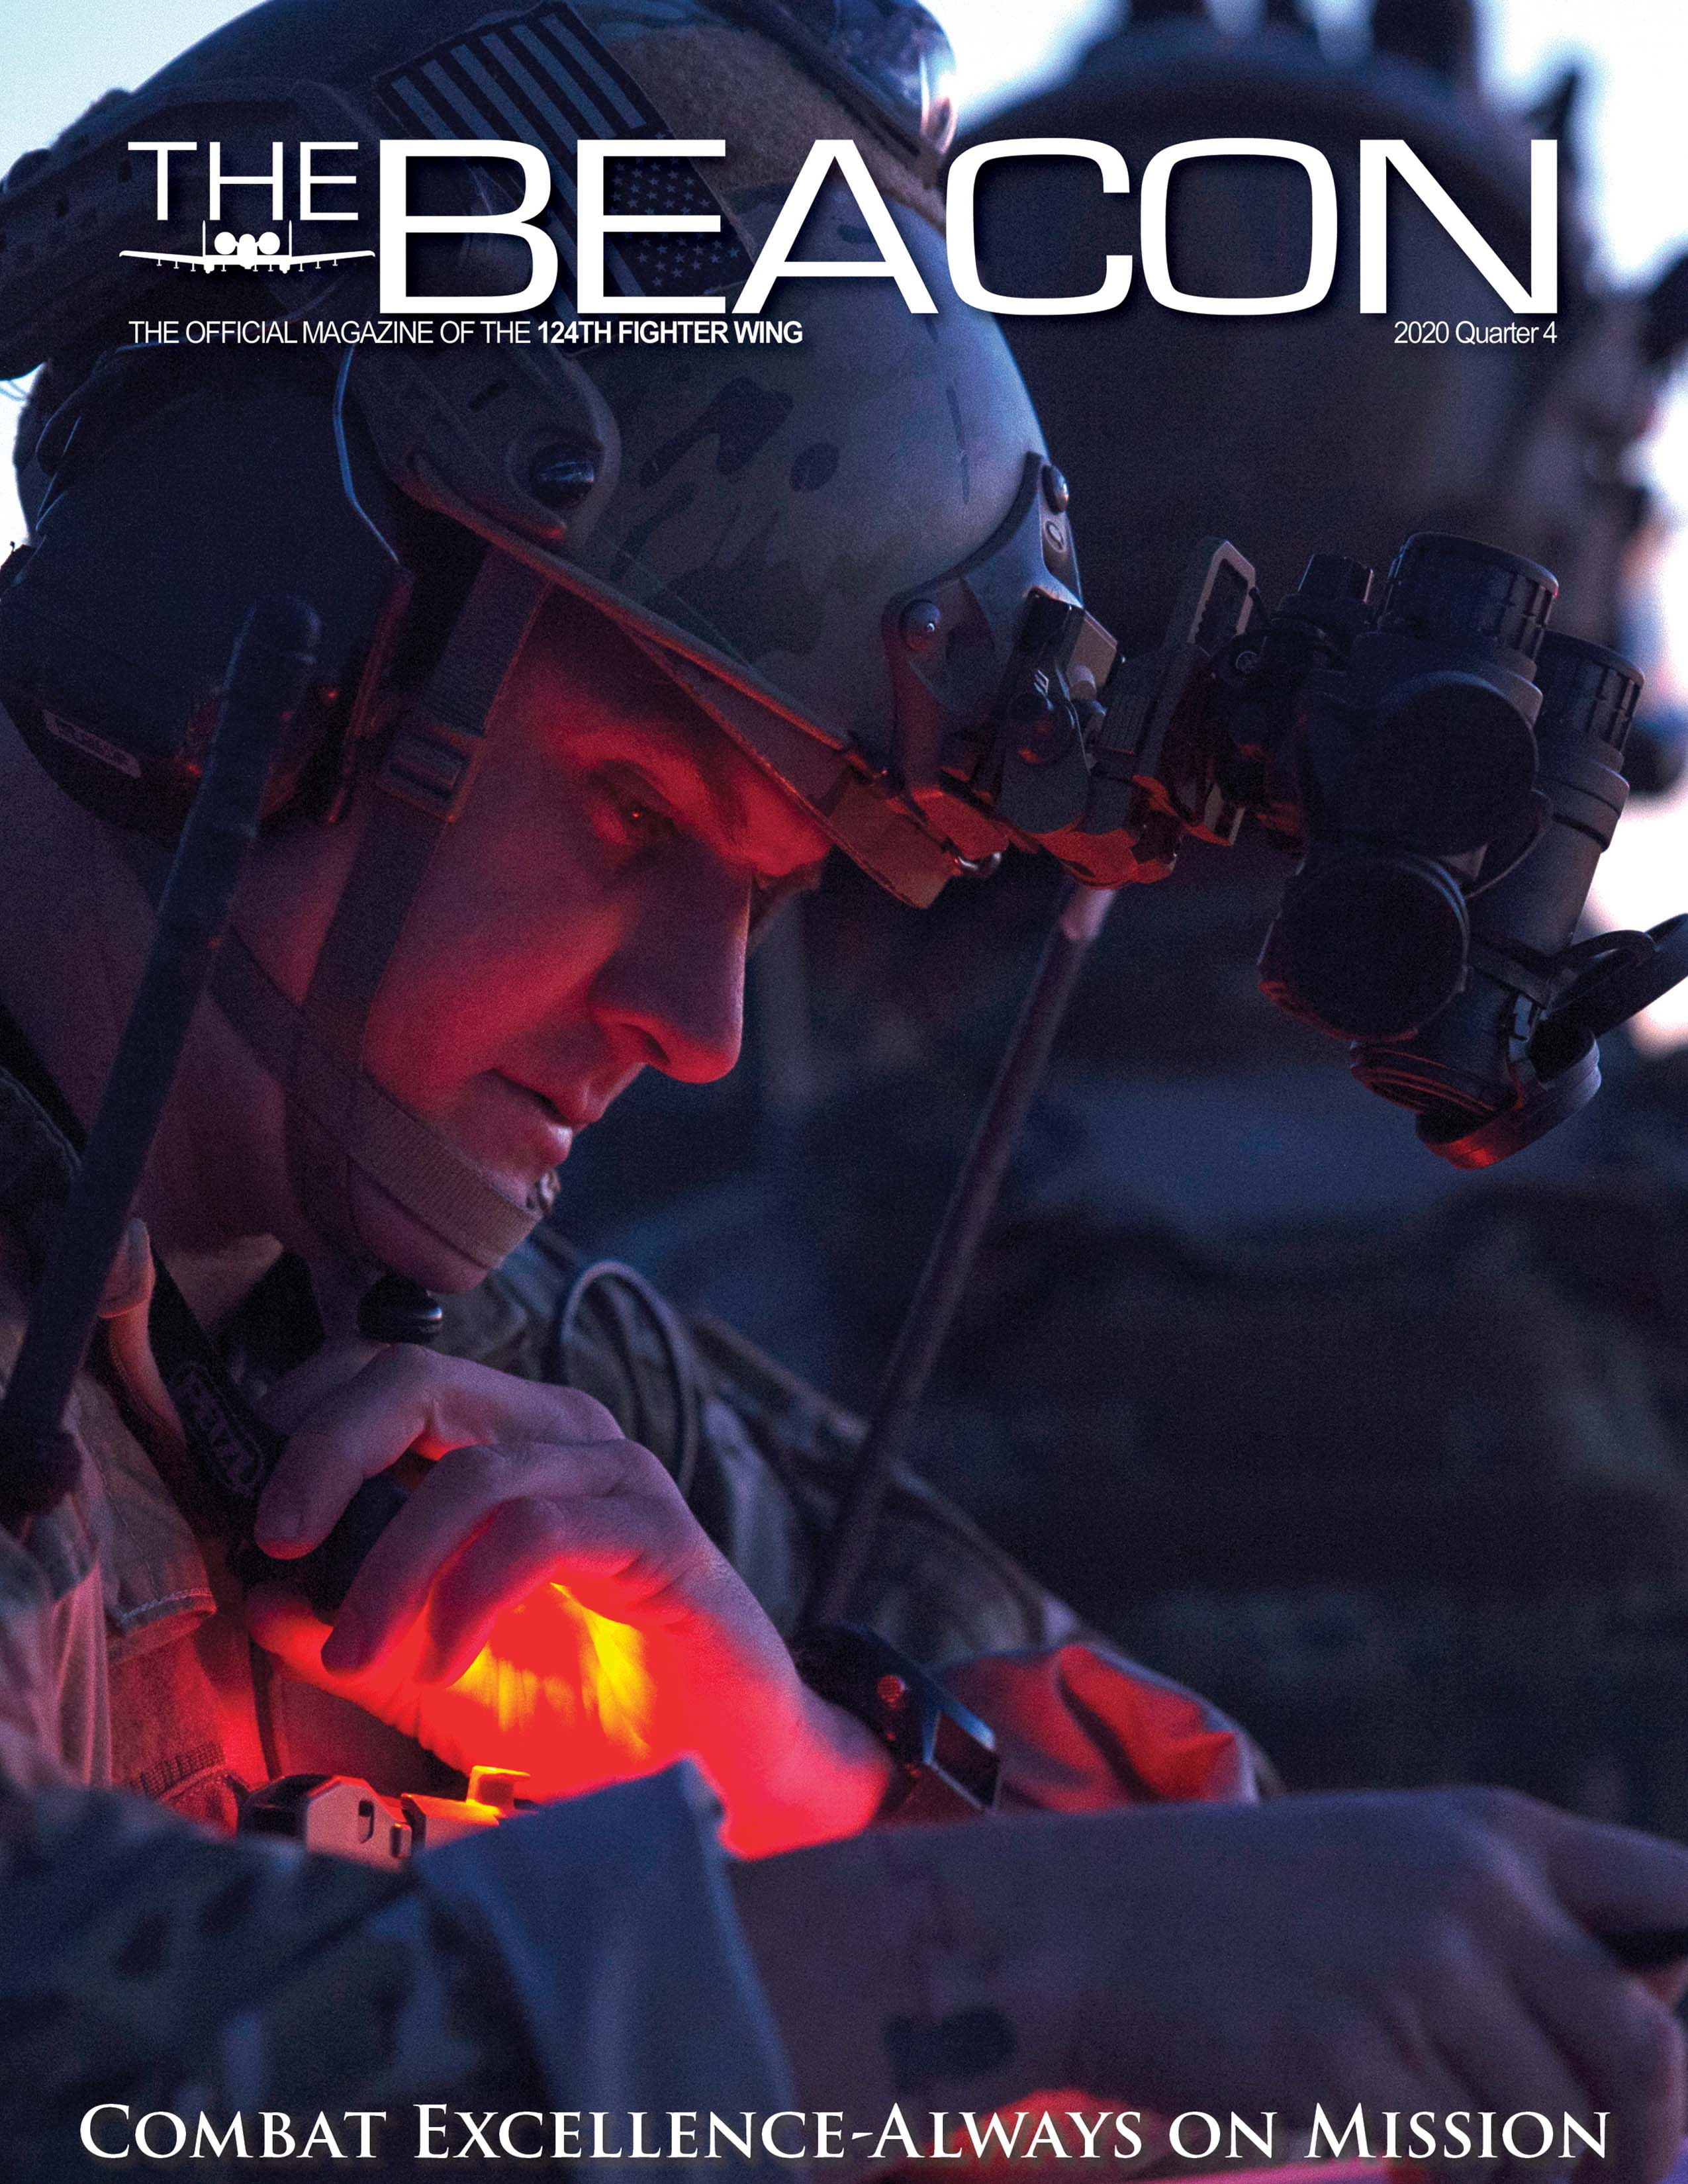 A picture of the cover of a magazine titled, The Beacon, the monthly magazine of the 124th Fighter Wing. The text at the bottom reads, Combat Excellence, always on mission. The cover shows a male Air Force Airman from the 124th Air Support Operations Squadron reading a map in low light during combat training.